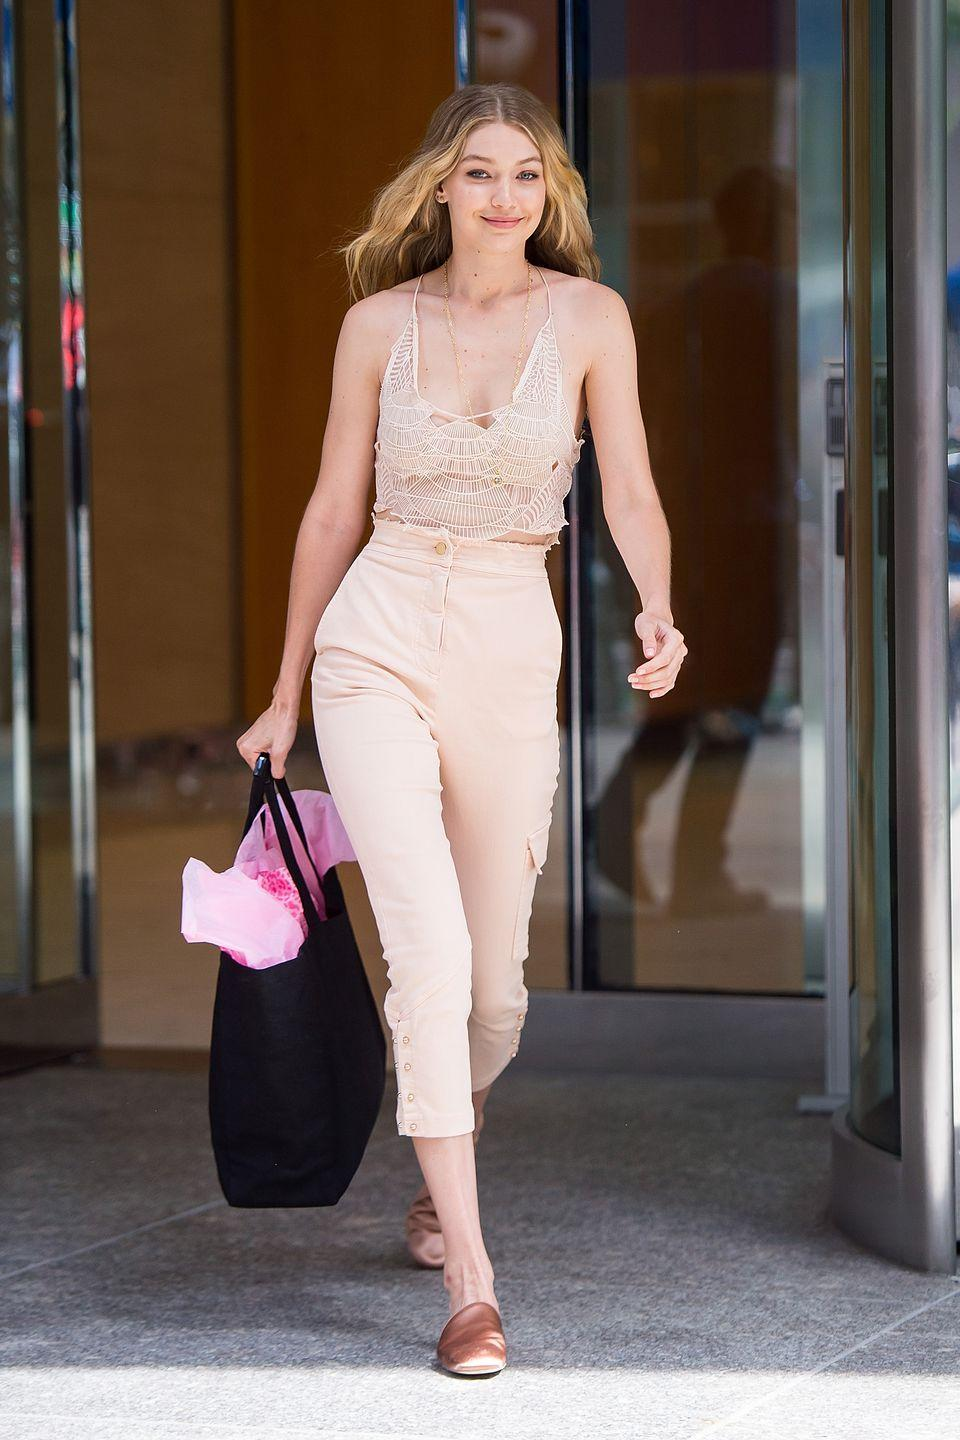 <p>Gigi Hadid is like the 2017 version of Cinderella, but instead of mice sewing her a ball gown, a team of spiders spun this delicate mesh top for her. At any rate, the spiders did a great job and this outfit is crazy cute. </p>